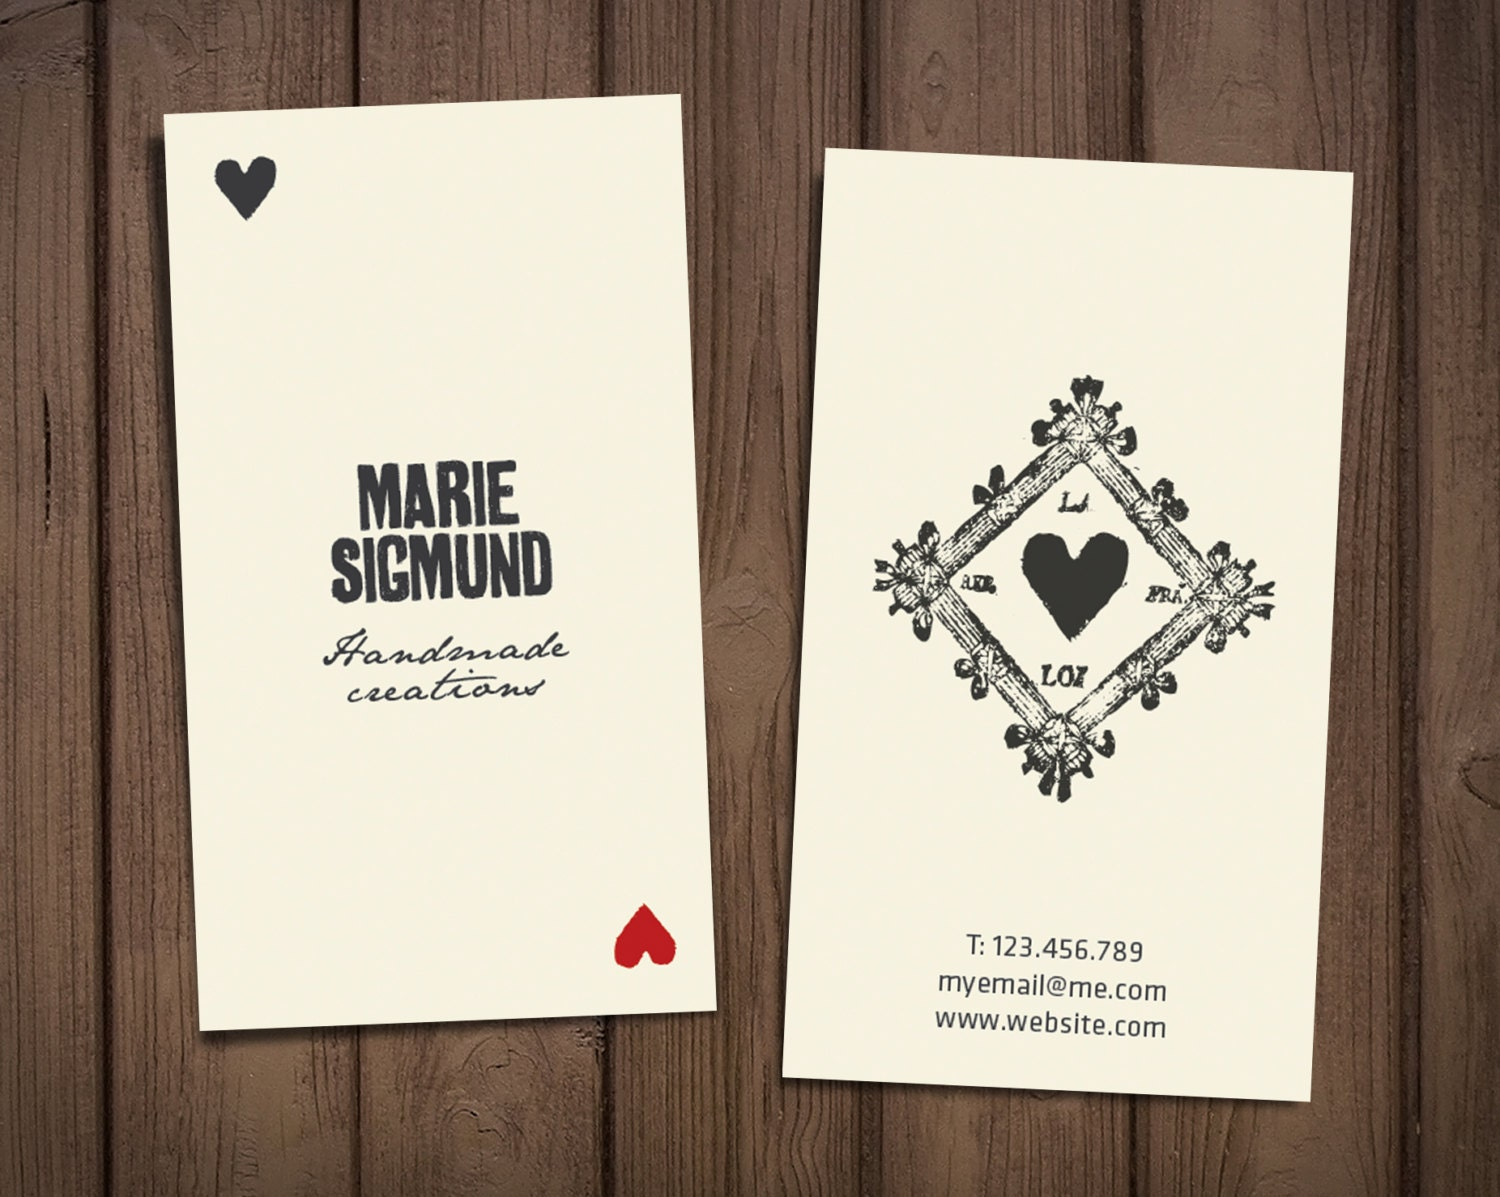 Unusual business playing cards ideas business card ideas etadamfo awesome business playing cards photos business card ideas etadam colourmoves Image collections